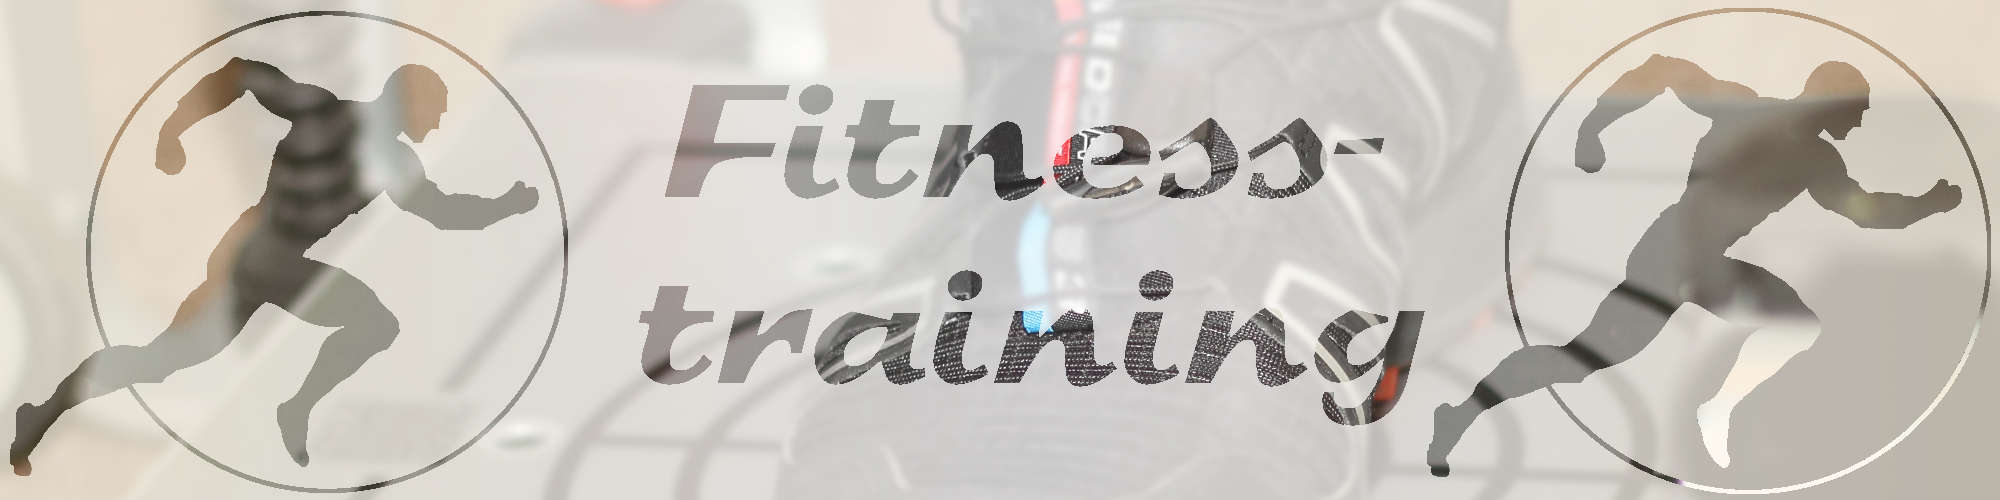 Fittnesstraining1